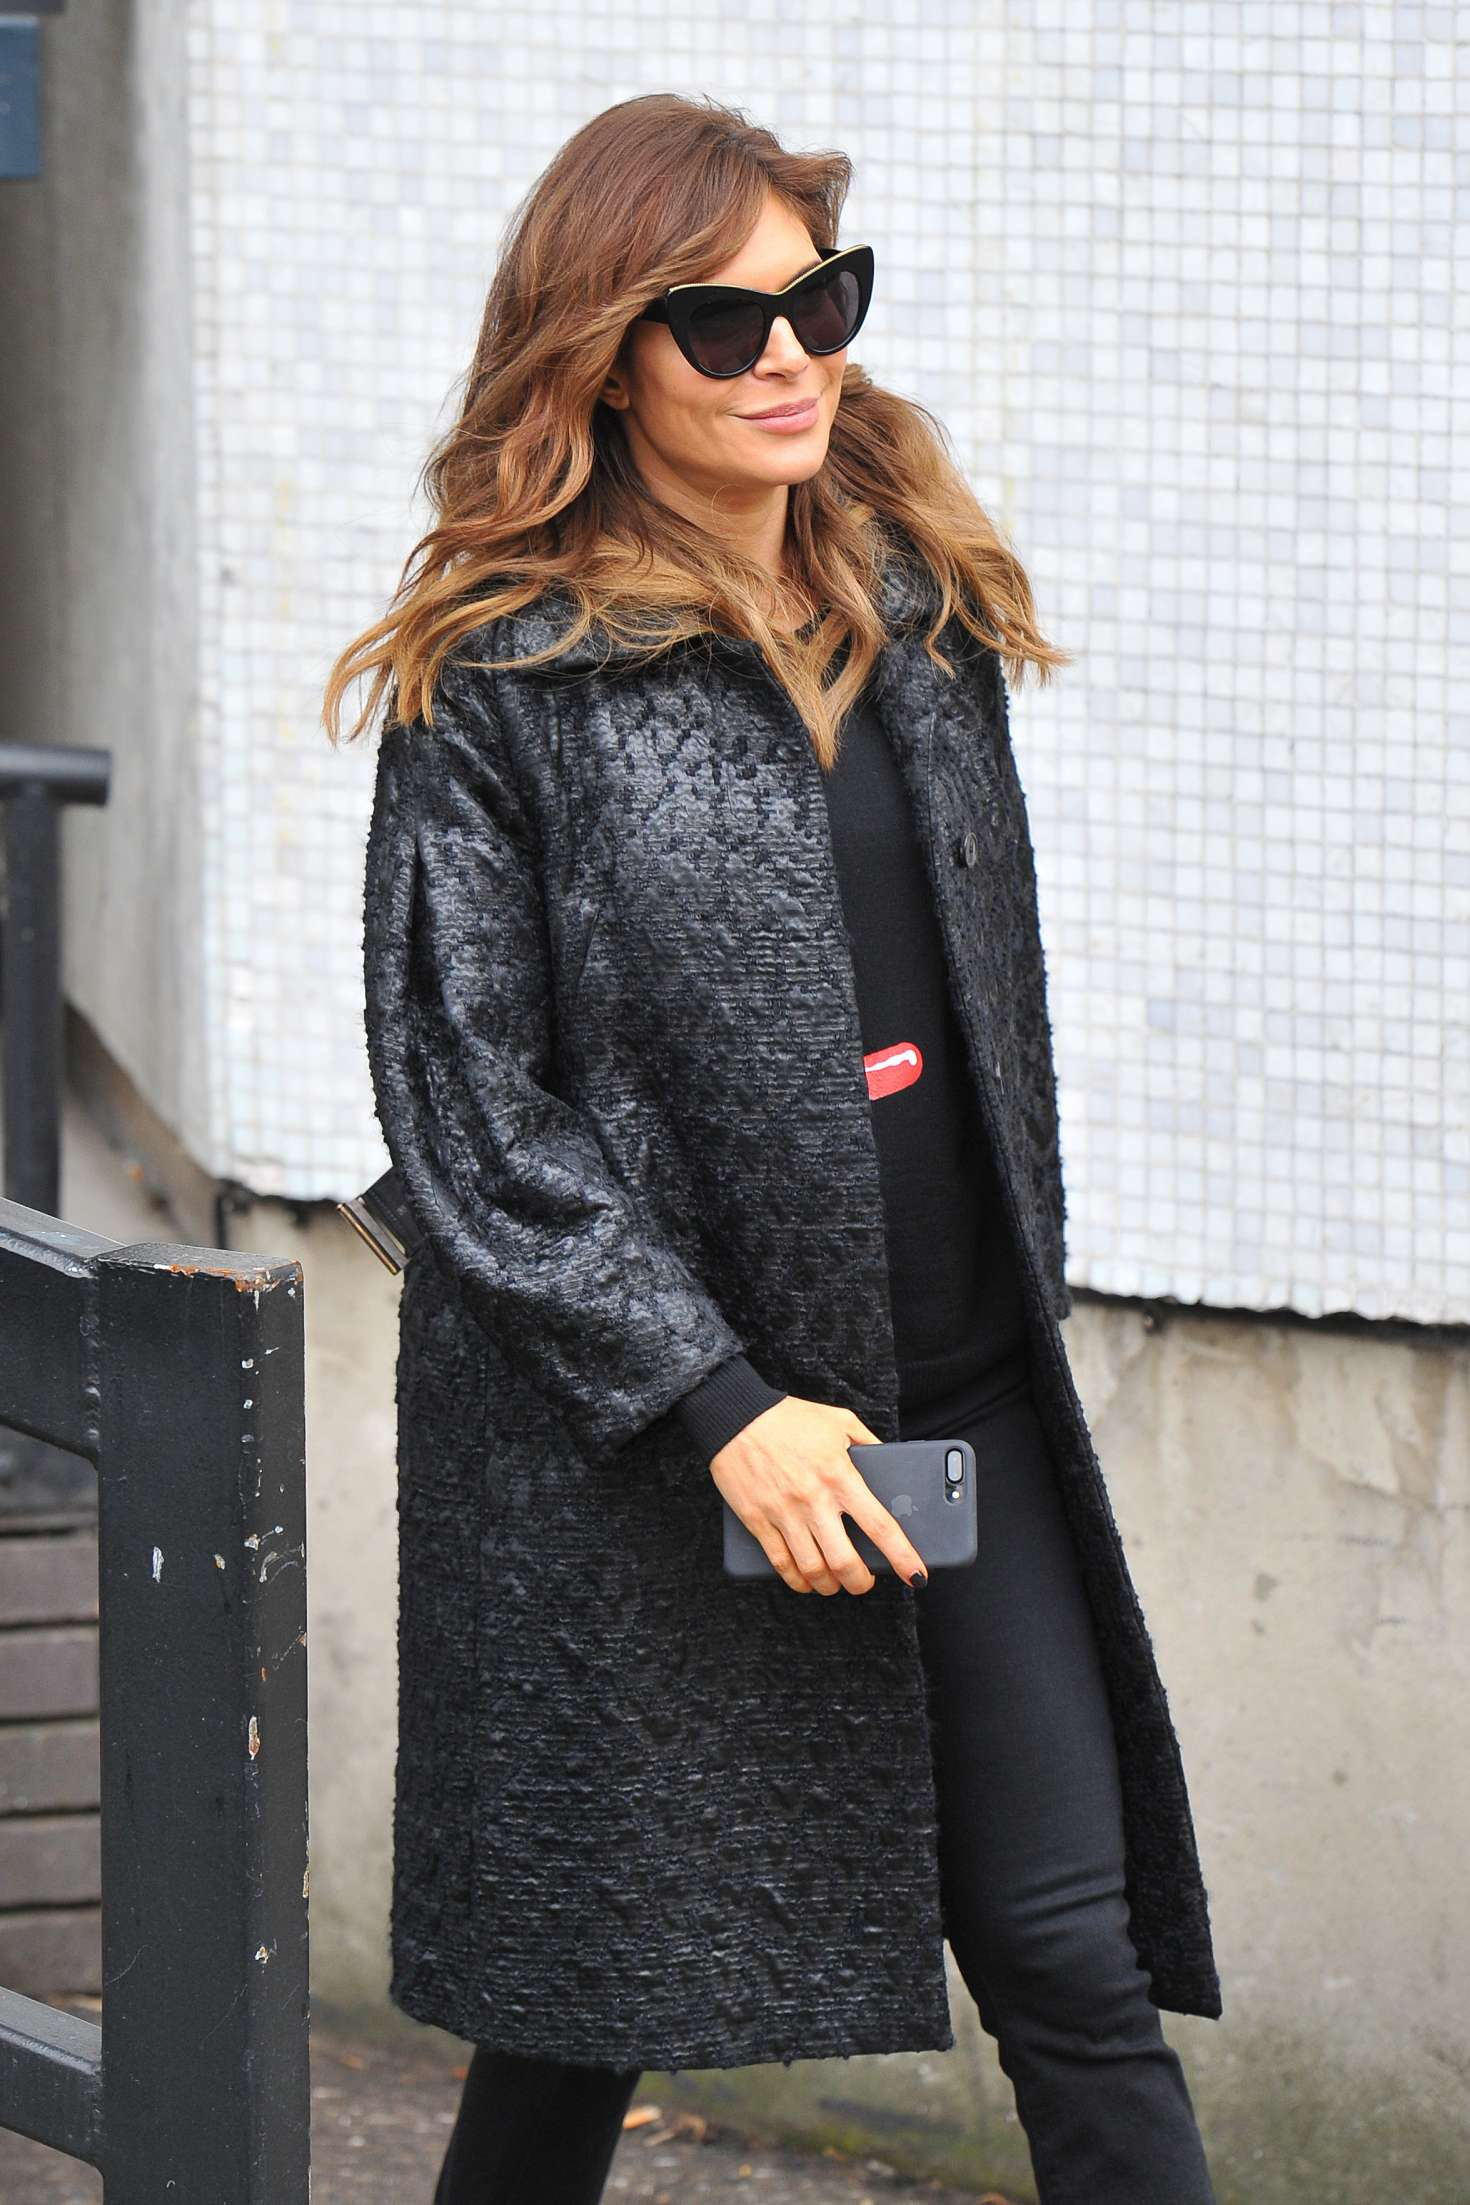 Ayda Field Leaving The ITV Studio In London GotCeleb